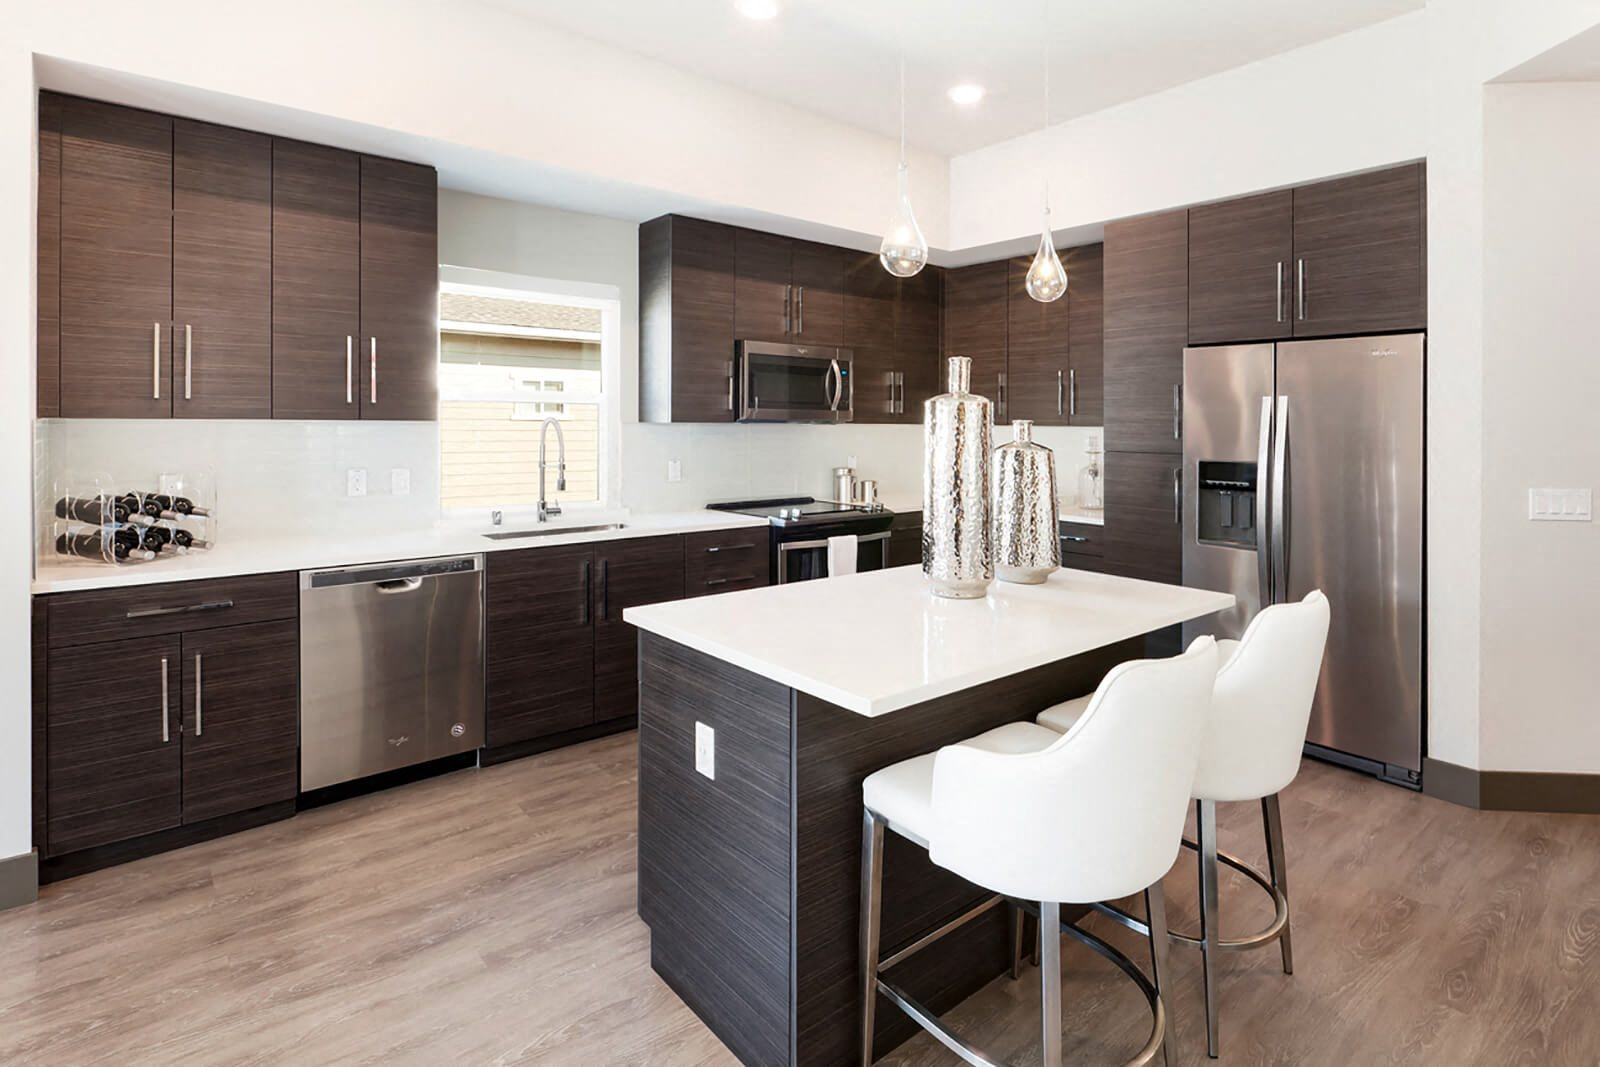 Chef Inspired Kitchen at Blu Harbor by Windsor, California, 94063